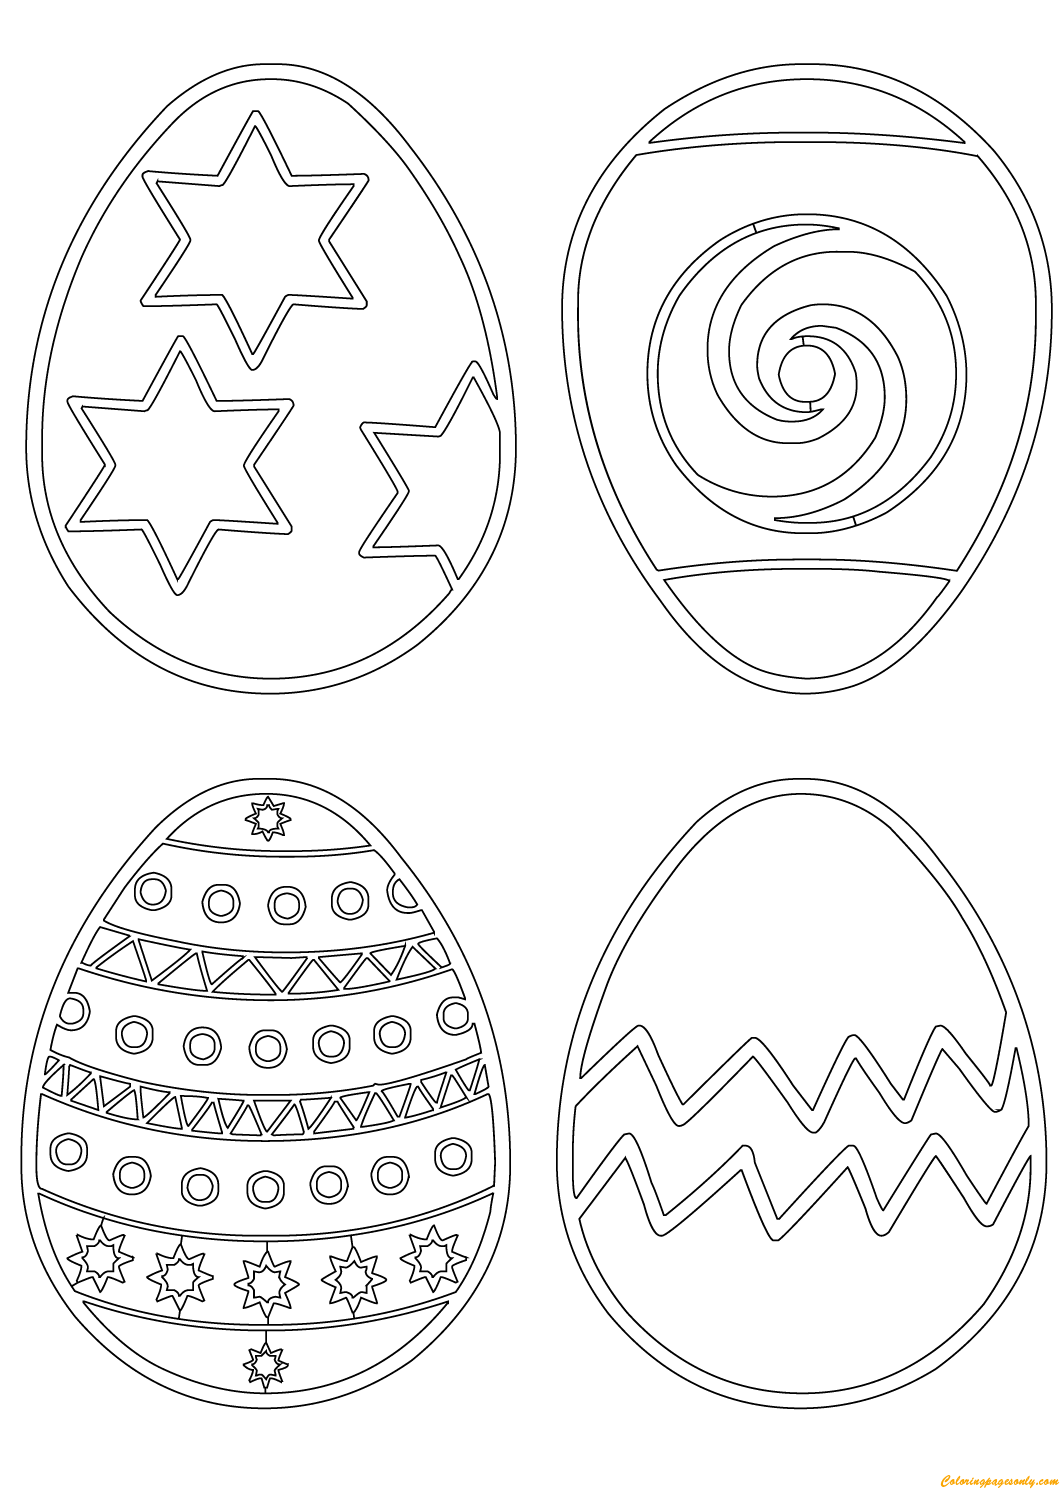 Patterns On Easter Eggs Coloring Page Free Coloring